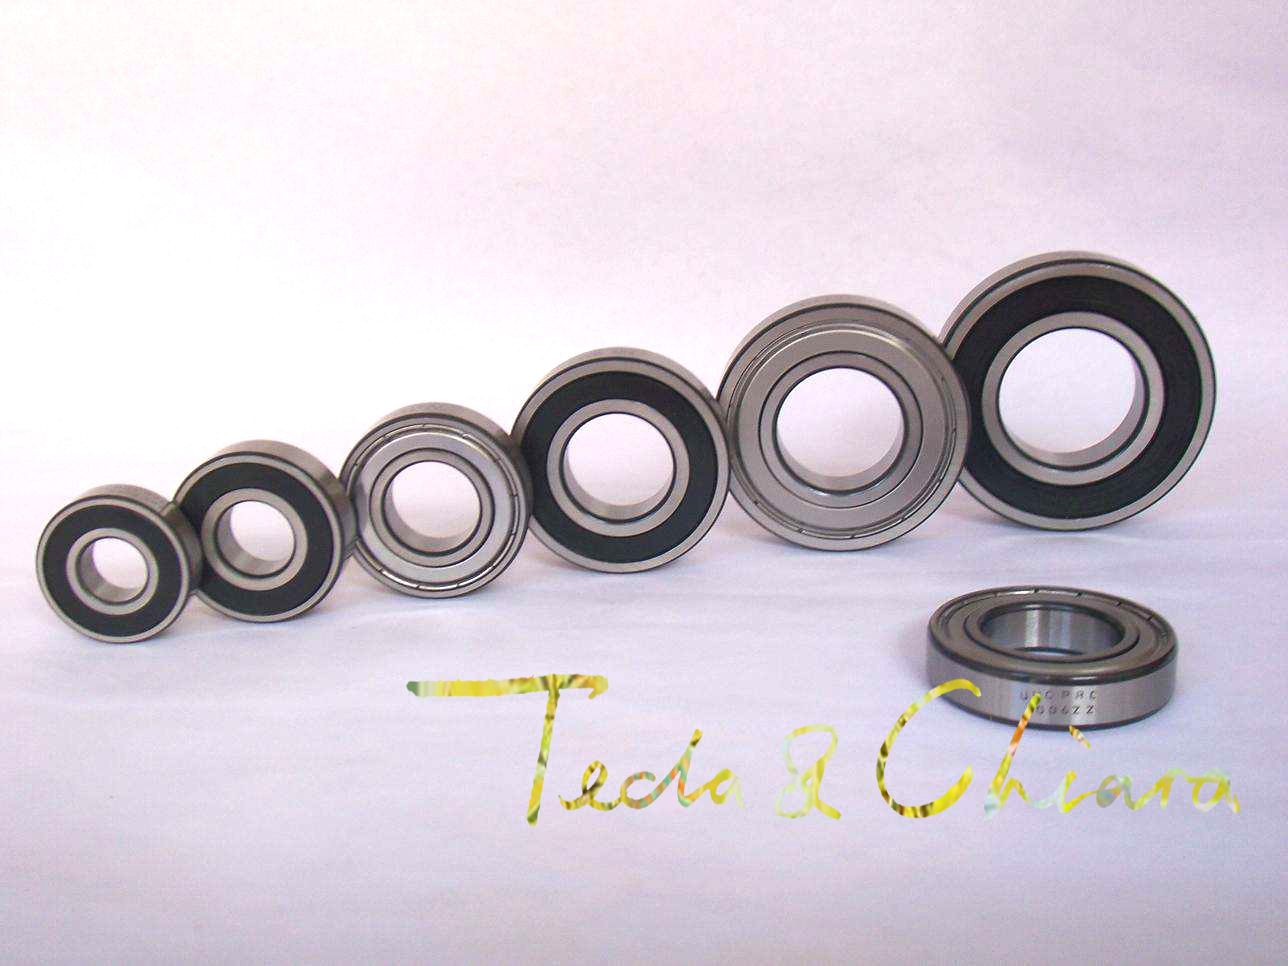 603 603ZZ 603RS 603-2Z 603Z 603-2RS ZZ RS RZ 2RZ Deep Groove Ball Bearings 3 x 9 x 5mm High Quality кабель high quality beats studio solo mixr 3 5mm page 9